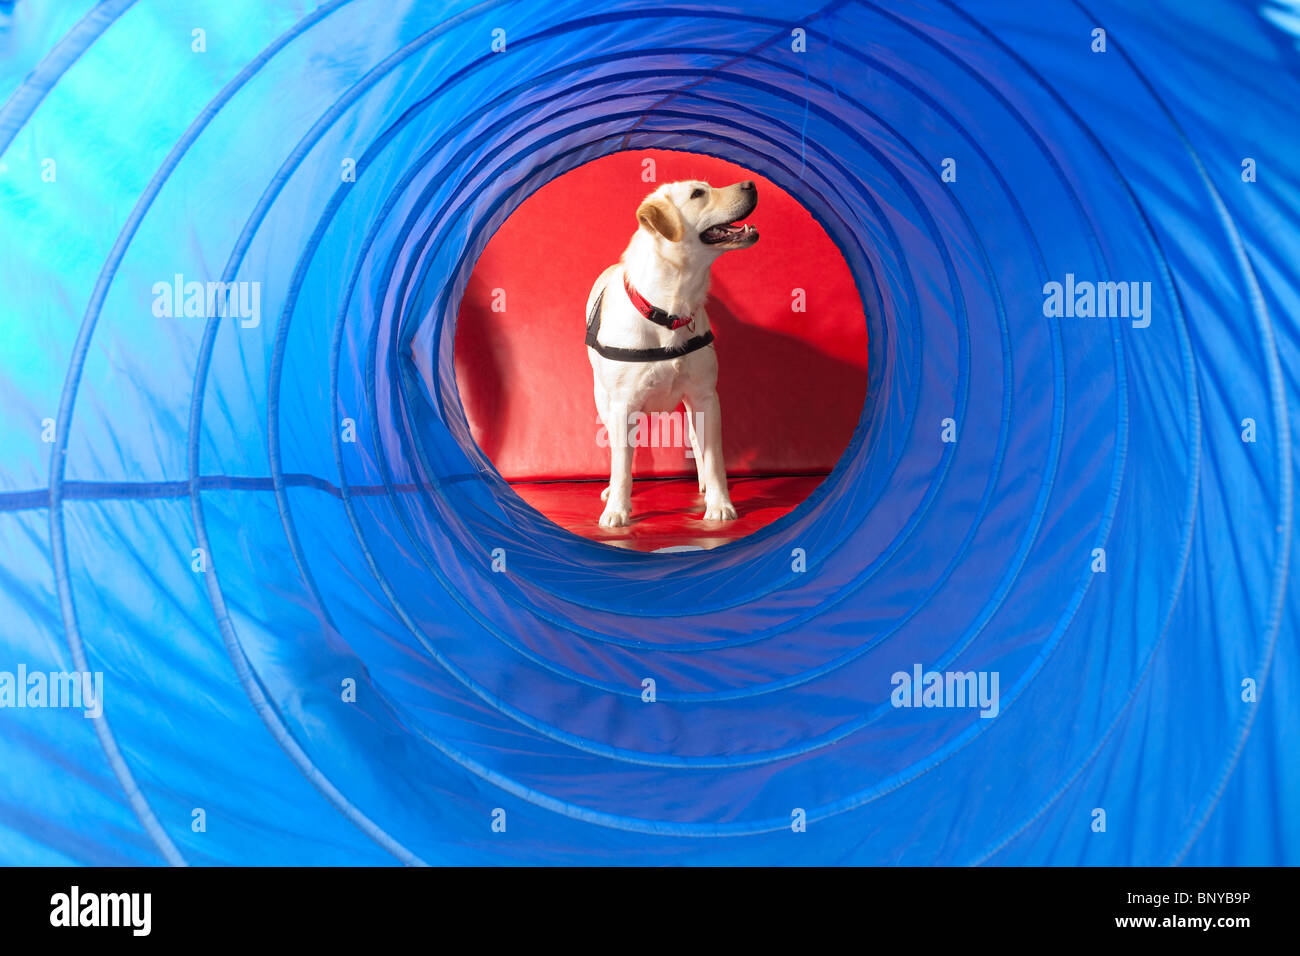 Trained dog for Assisted therapy - Stock Image